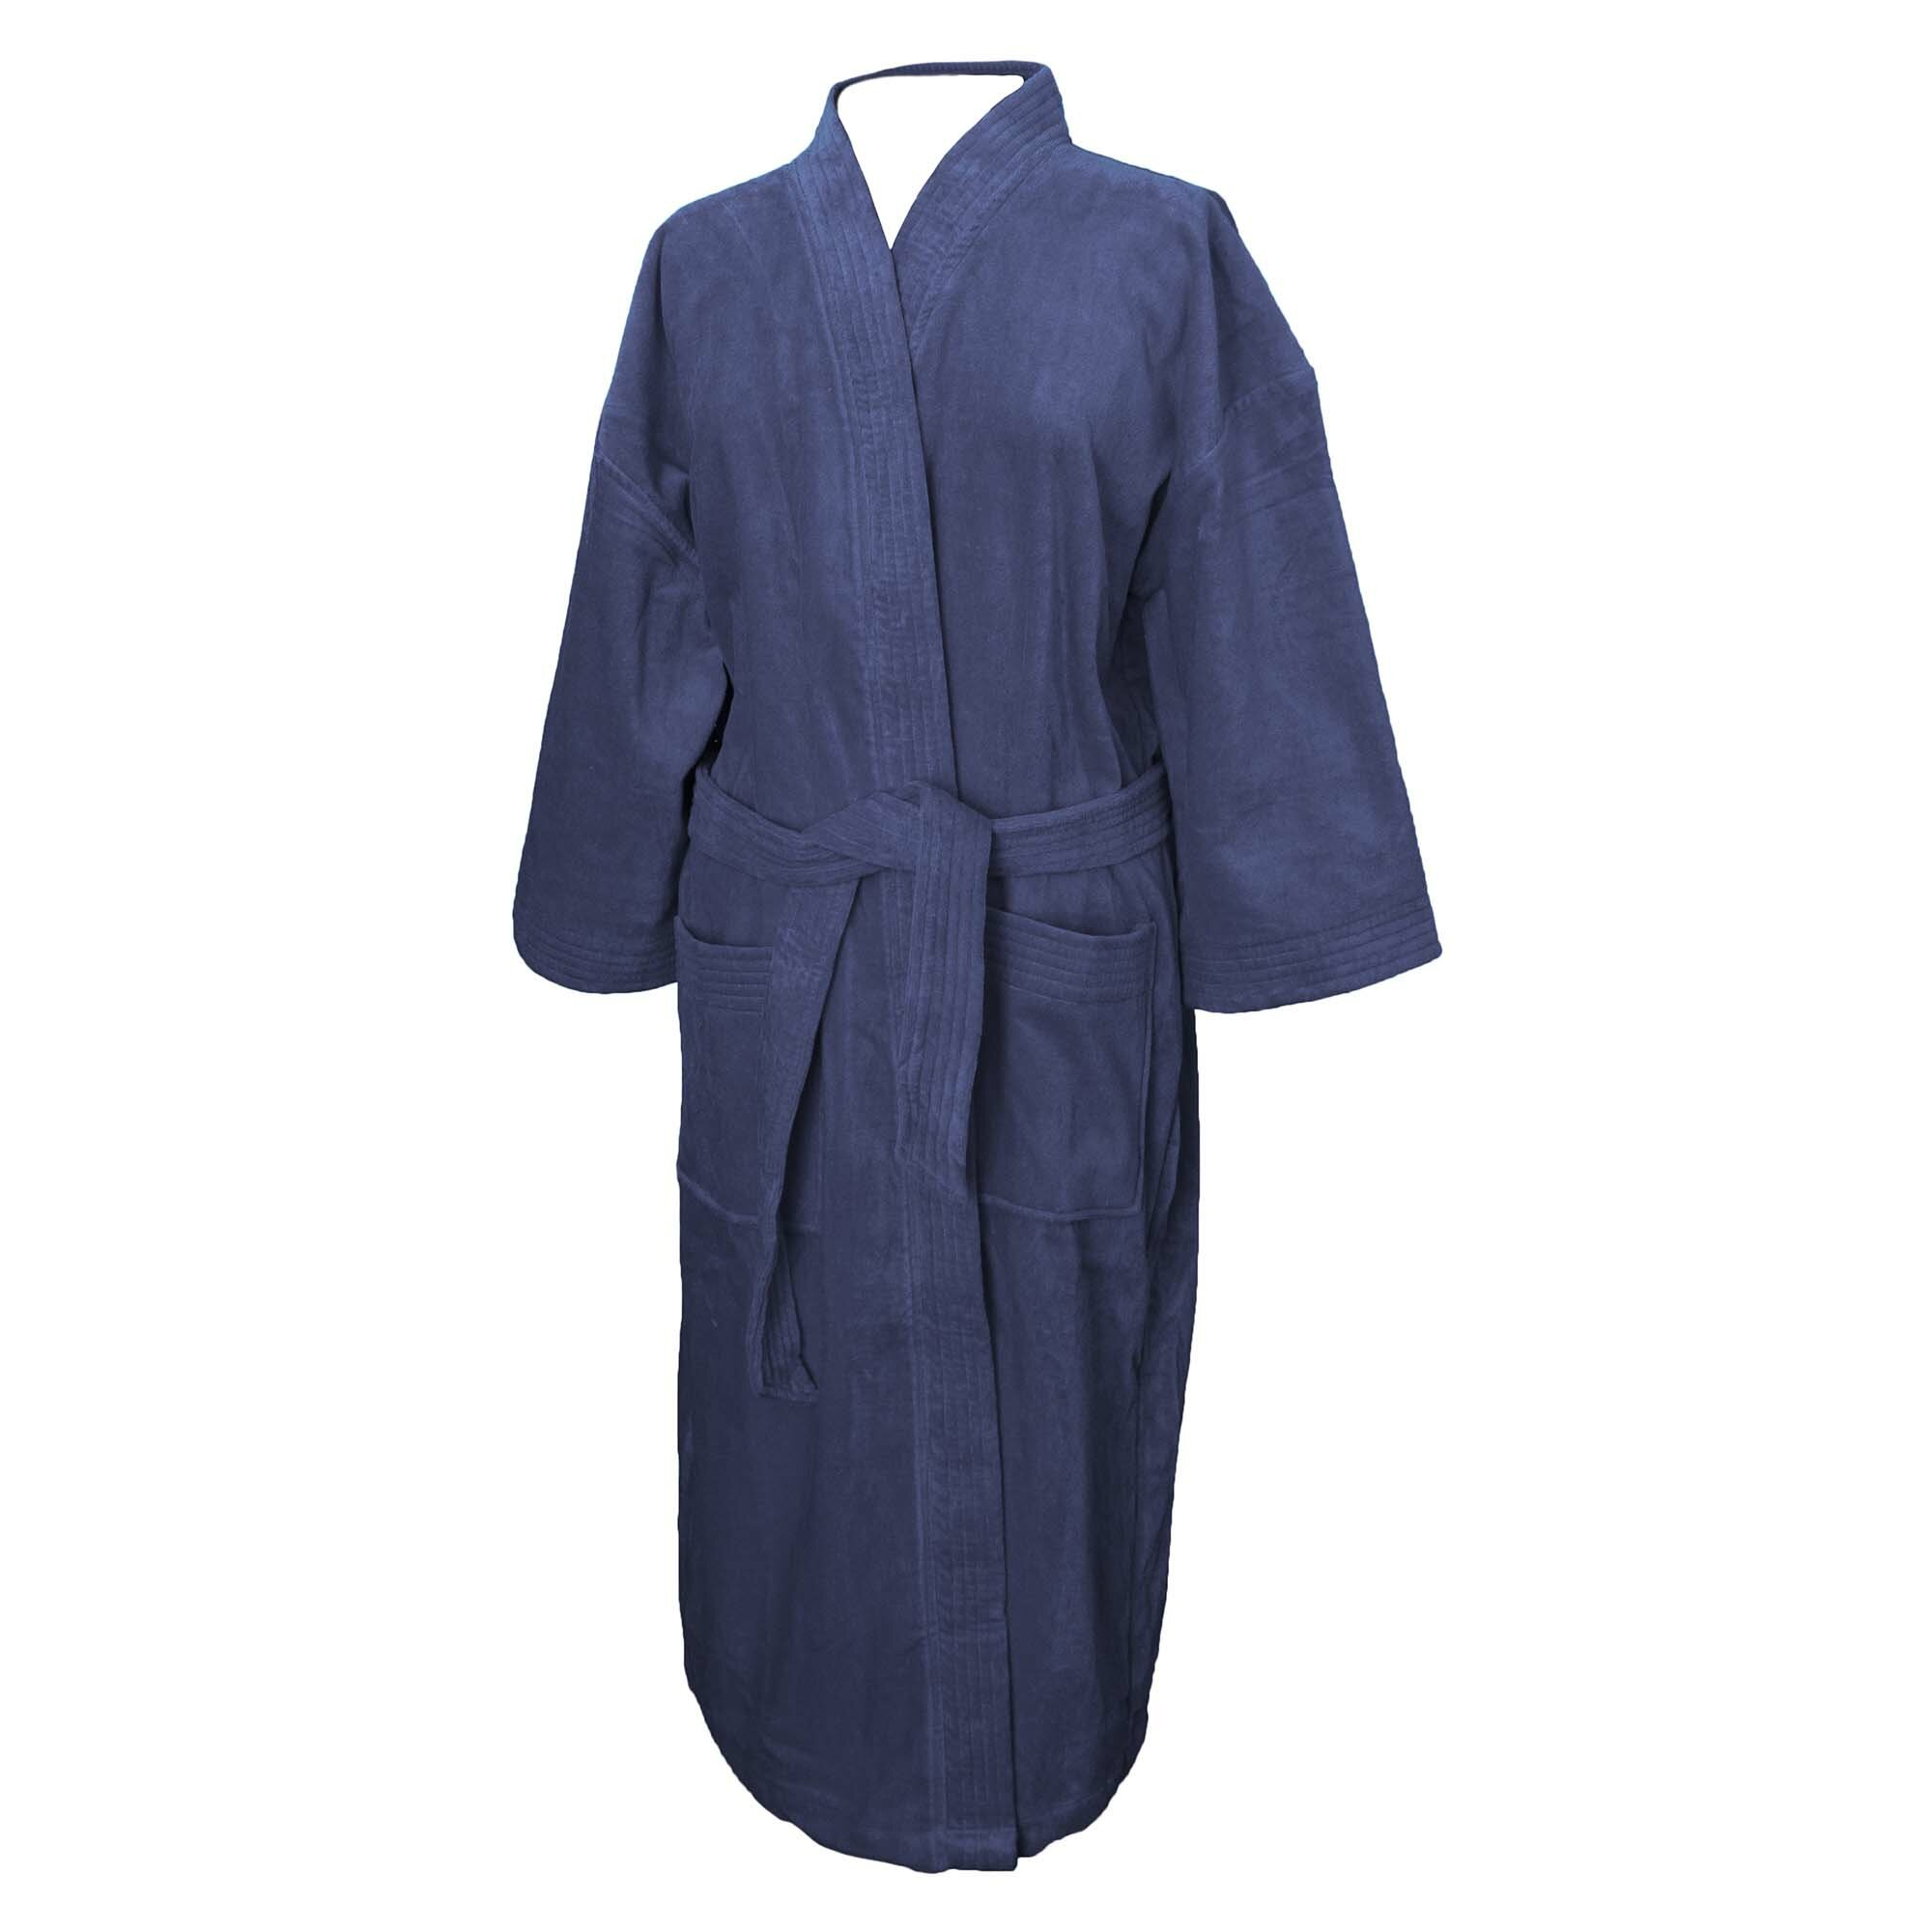 Terry Town Terry 100% Cotton Velour Bathrobe   Reviews  85745de4a